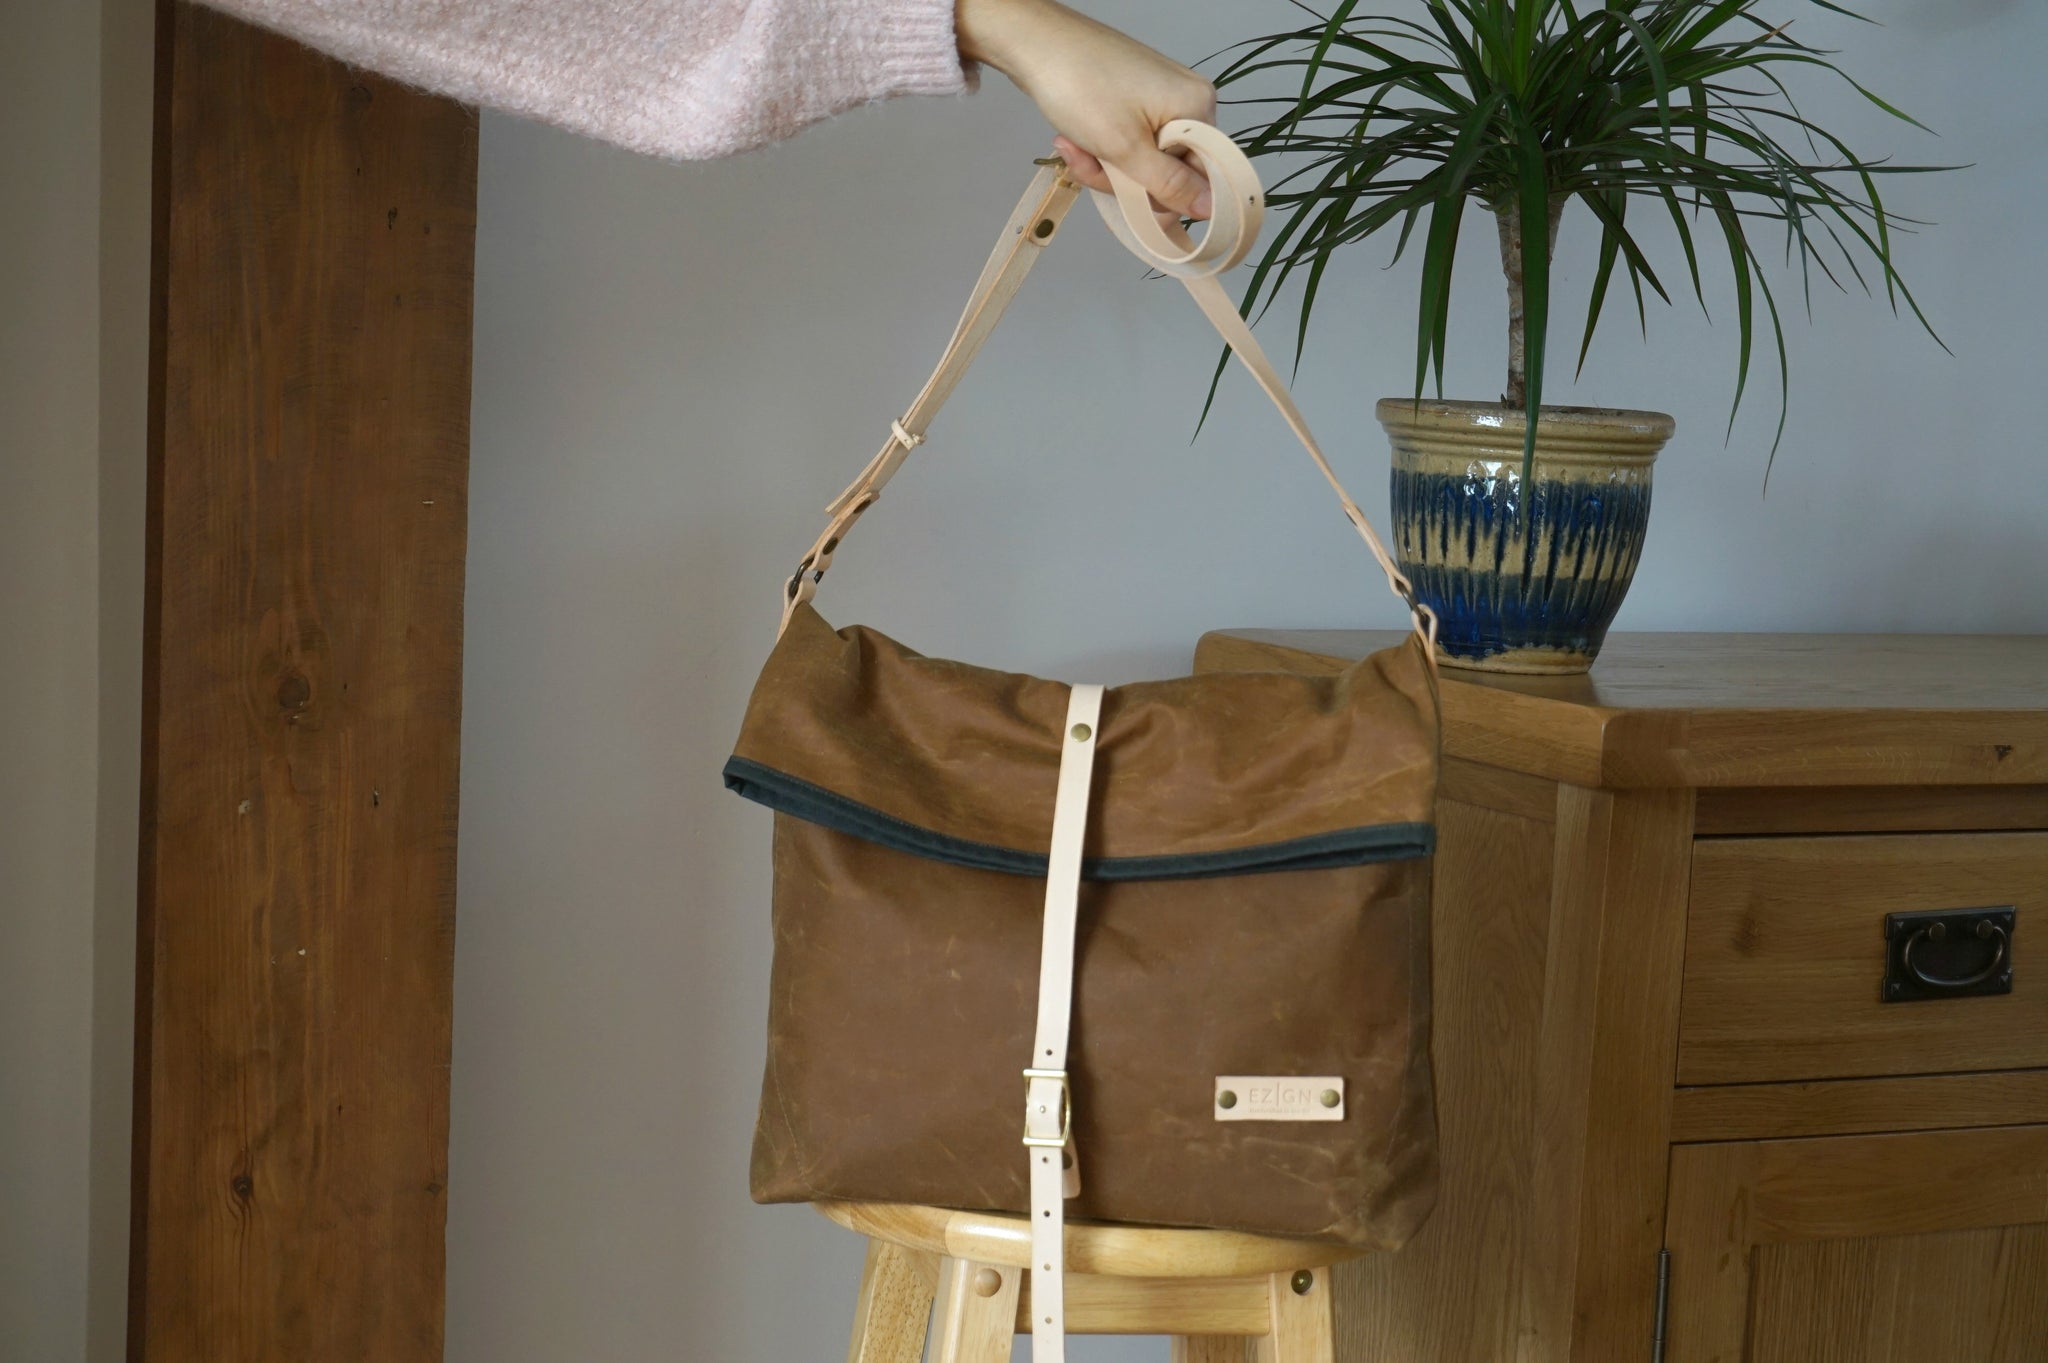 753f293ebe48 ... Load image into Gallery viewer, Gold Wax Canvas Cross Body Bag -  Everyday Bag style ...